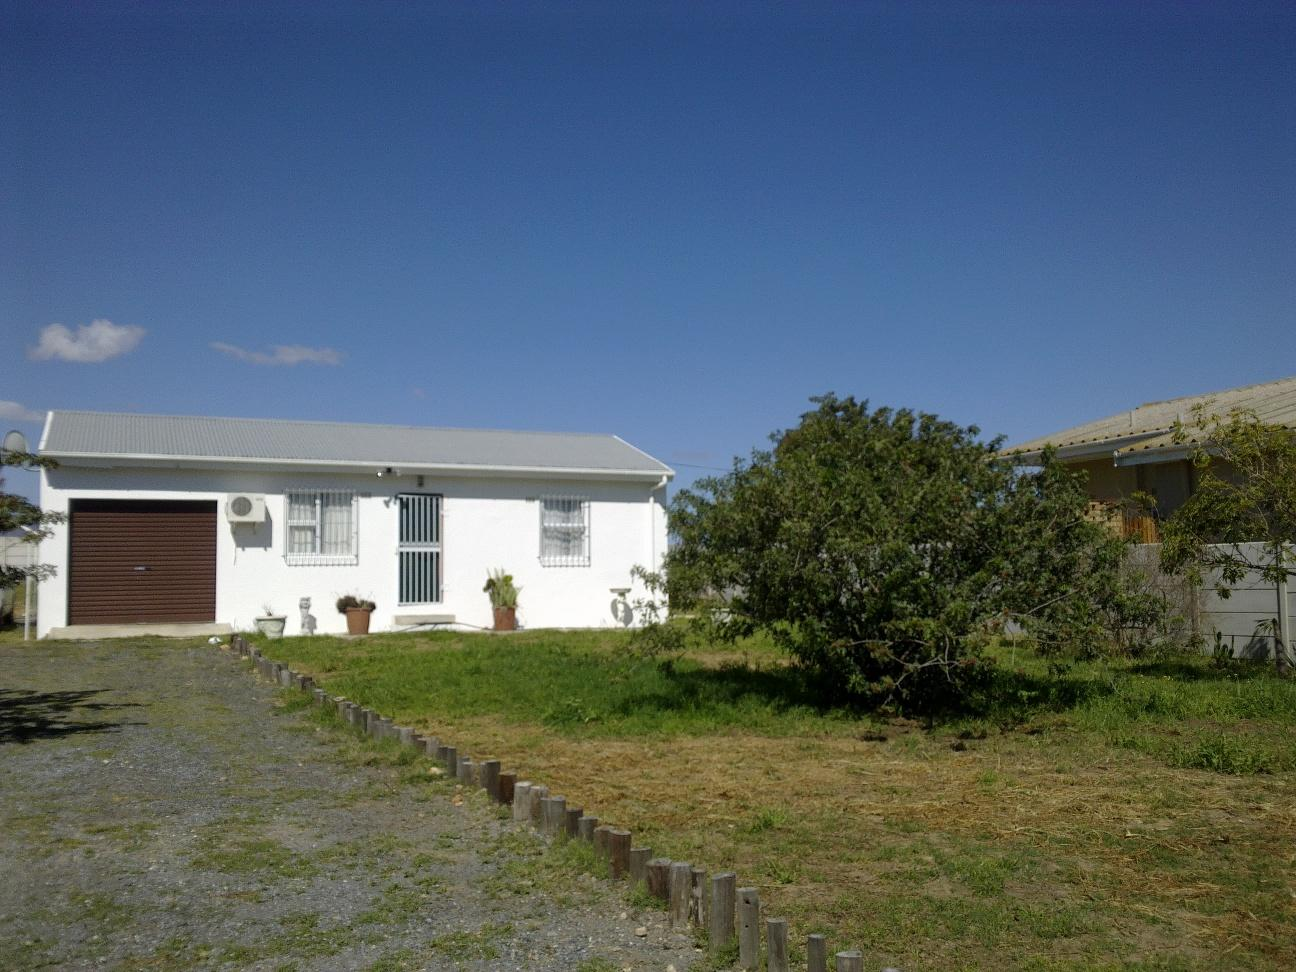 2 Bedroom House for Sale For Sale in Piketberg - Home Sell - MR130795